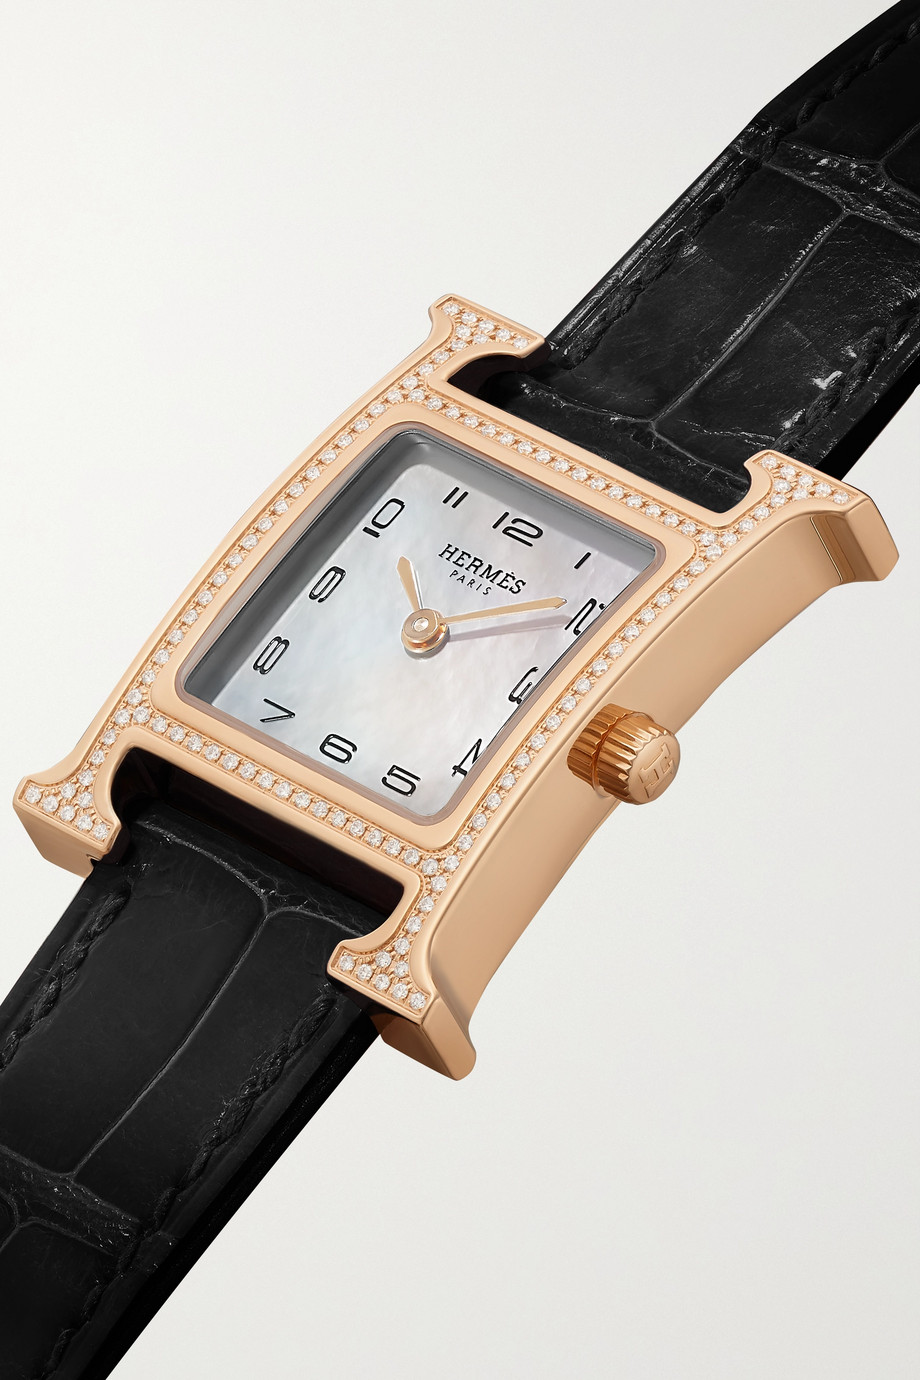 Hermès Timepieces Heure H 21mm small 18-karat rose gold, alligator, mother-of-pearl and diamond watch